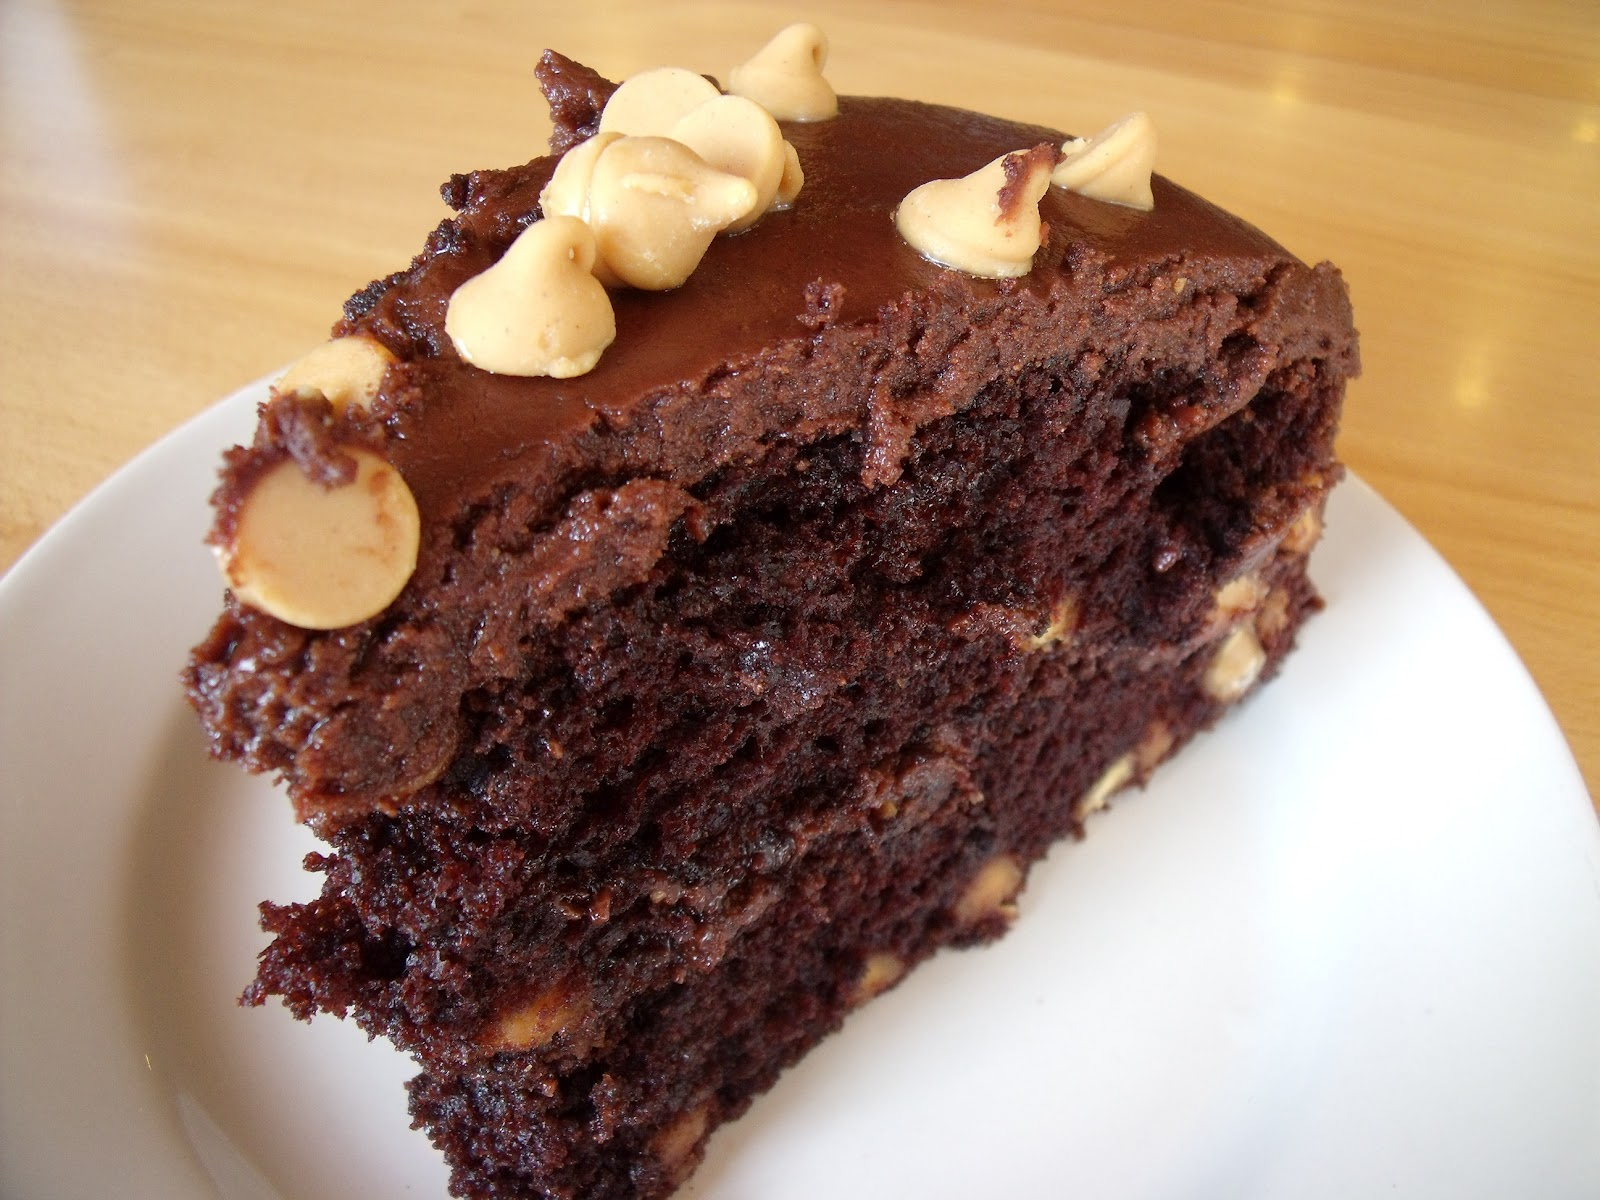 Harvest Moon Cafe: Gluten Free Chocolate Peanut Butter Cake